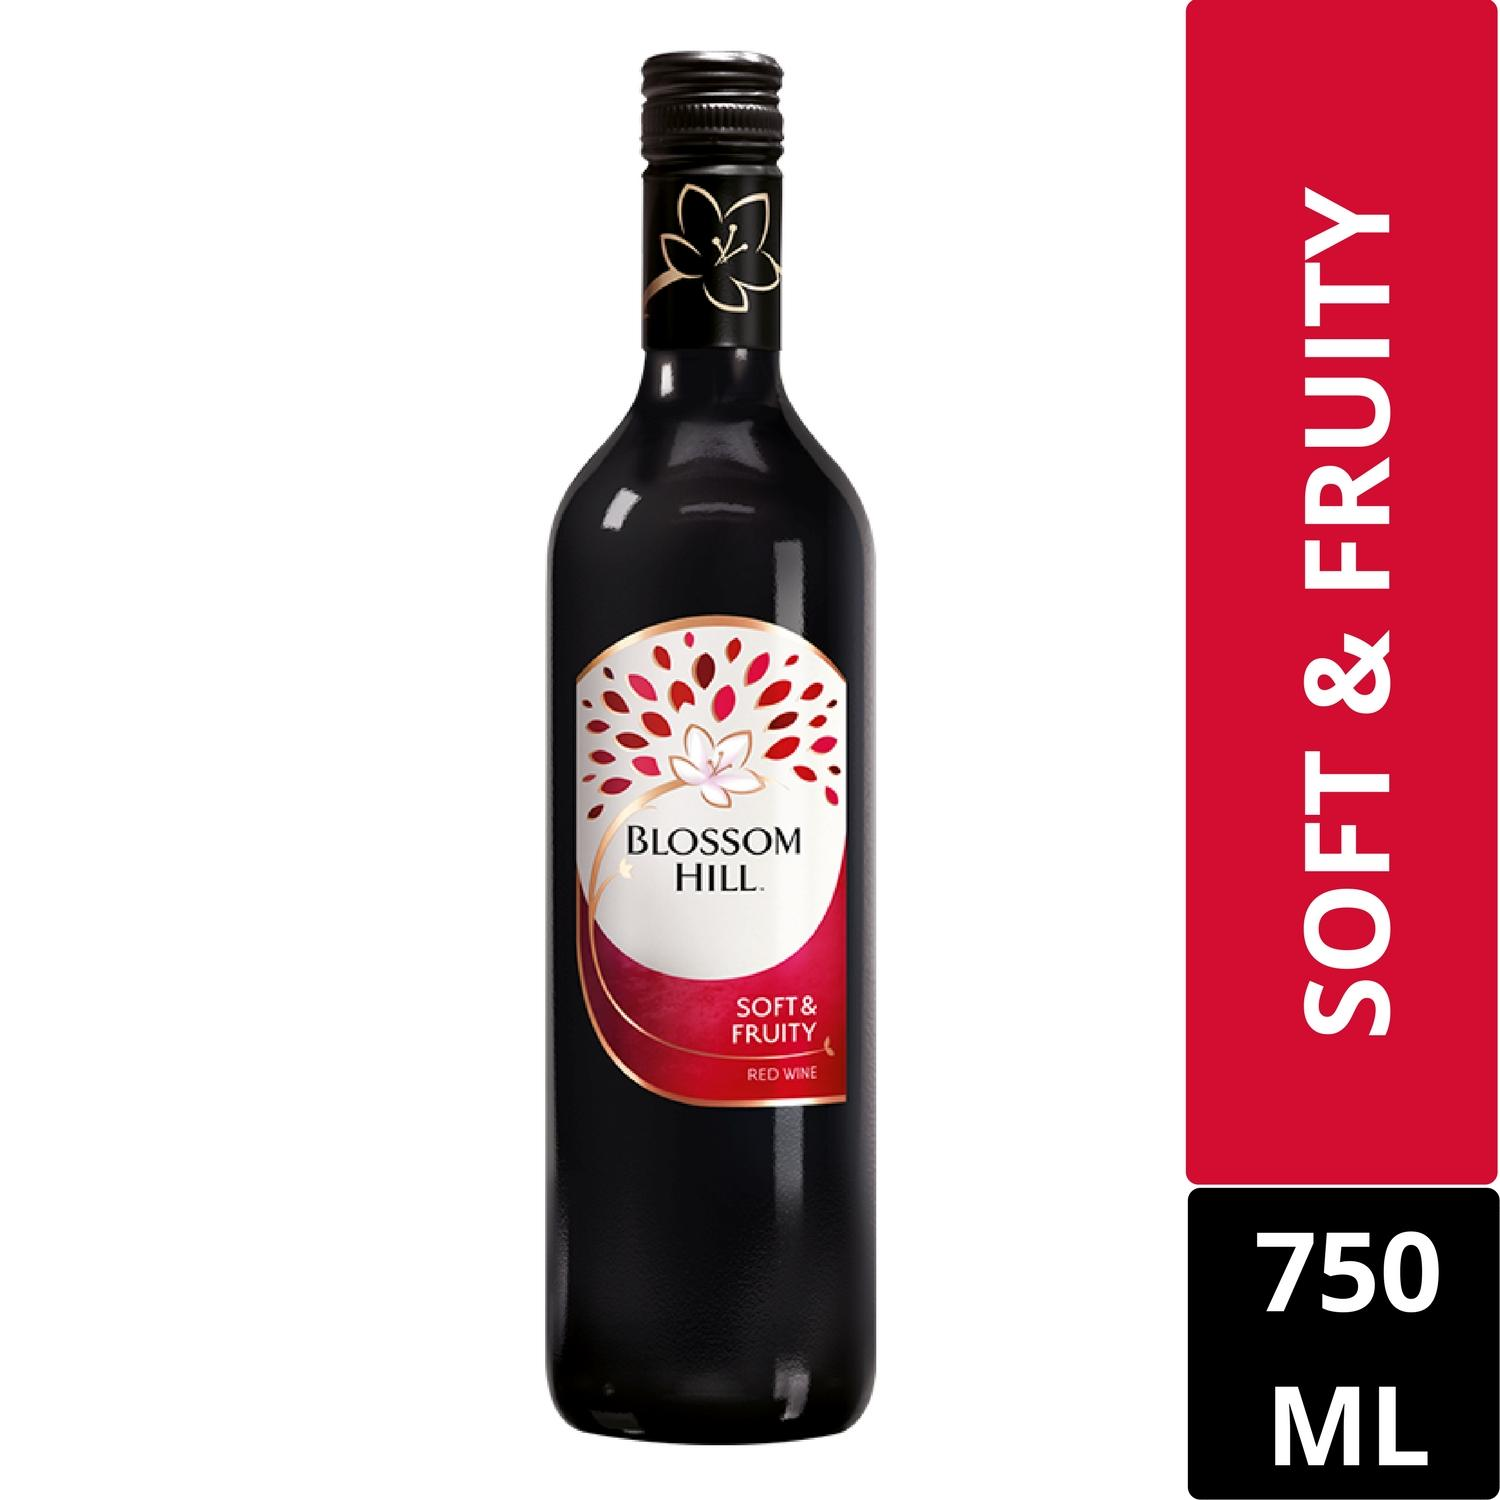 Blossom Hill Soft Fruity Red Wine 750Ml Discount Code